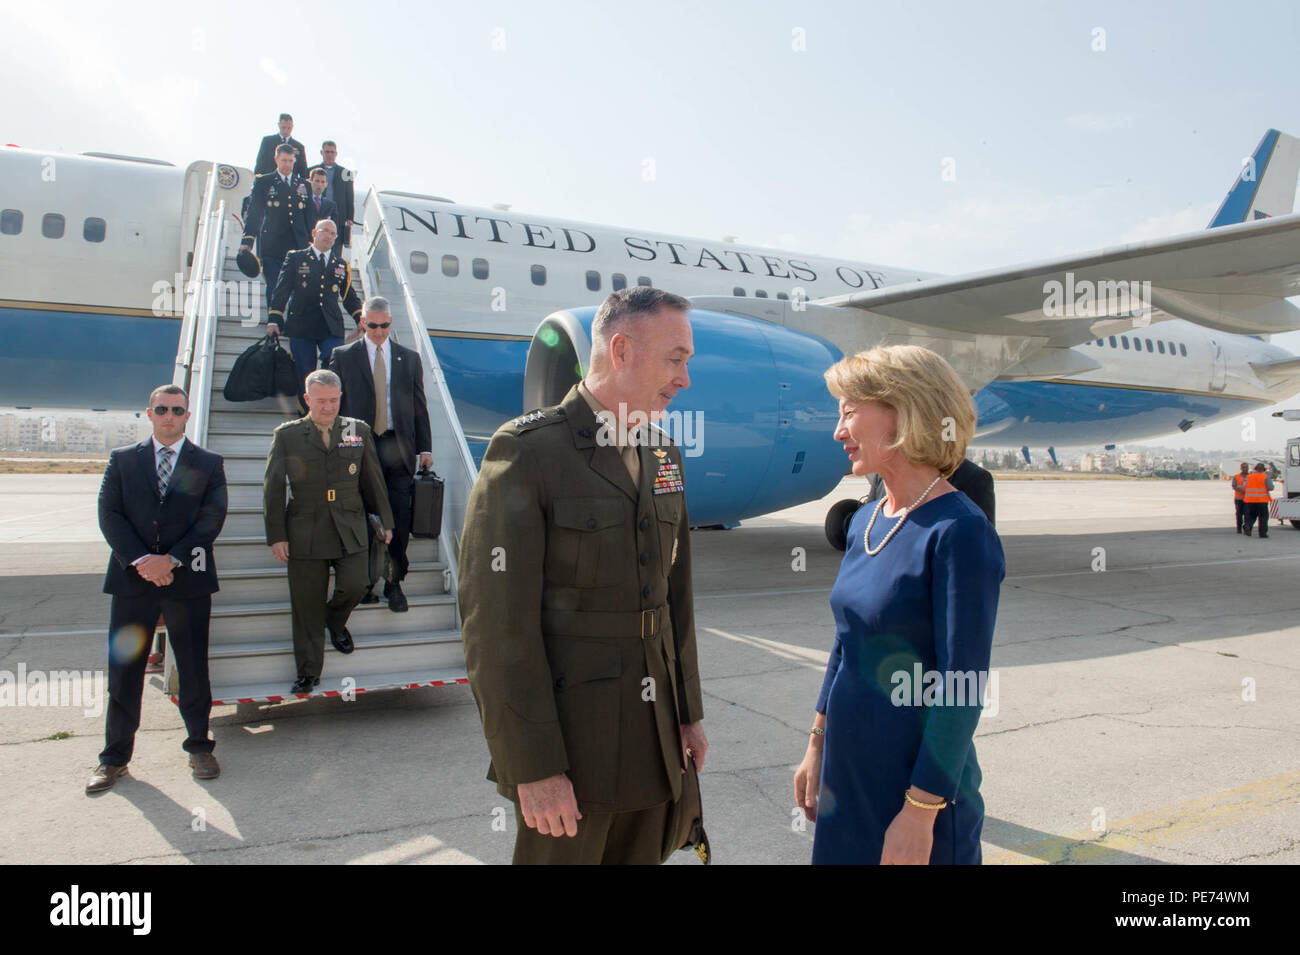 U.S. Ambassador to Jordan, Alice G. Wells, meets with U.S. Marine Gen. Joseph F. Dunford Jr., chairman of the Joint Chiefs of Staff, at the airport in Amman, Jordan, Oct. 19, 2015. (DoD photo by D. Myles Cullen/Released) - Stock Image